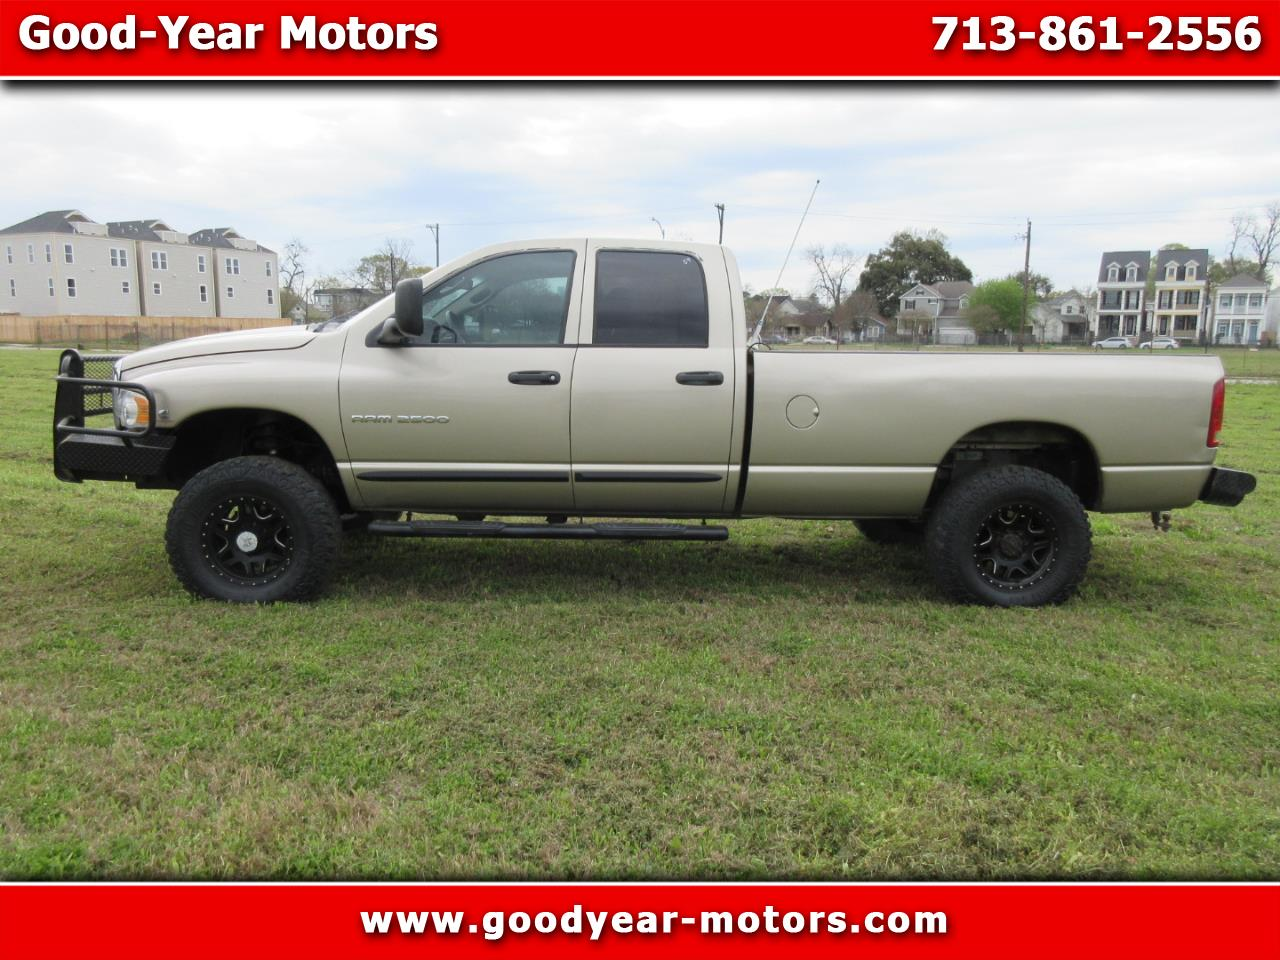 2005 Dodge Ram 2500 SLT Quad Cab Long Bed 4WD